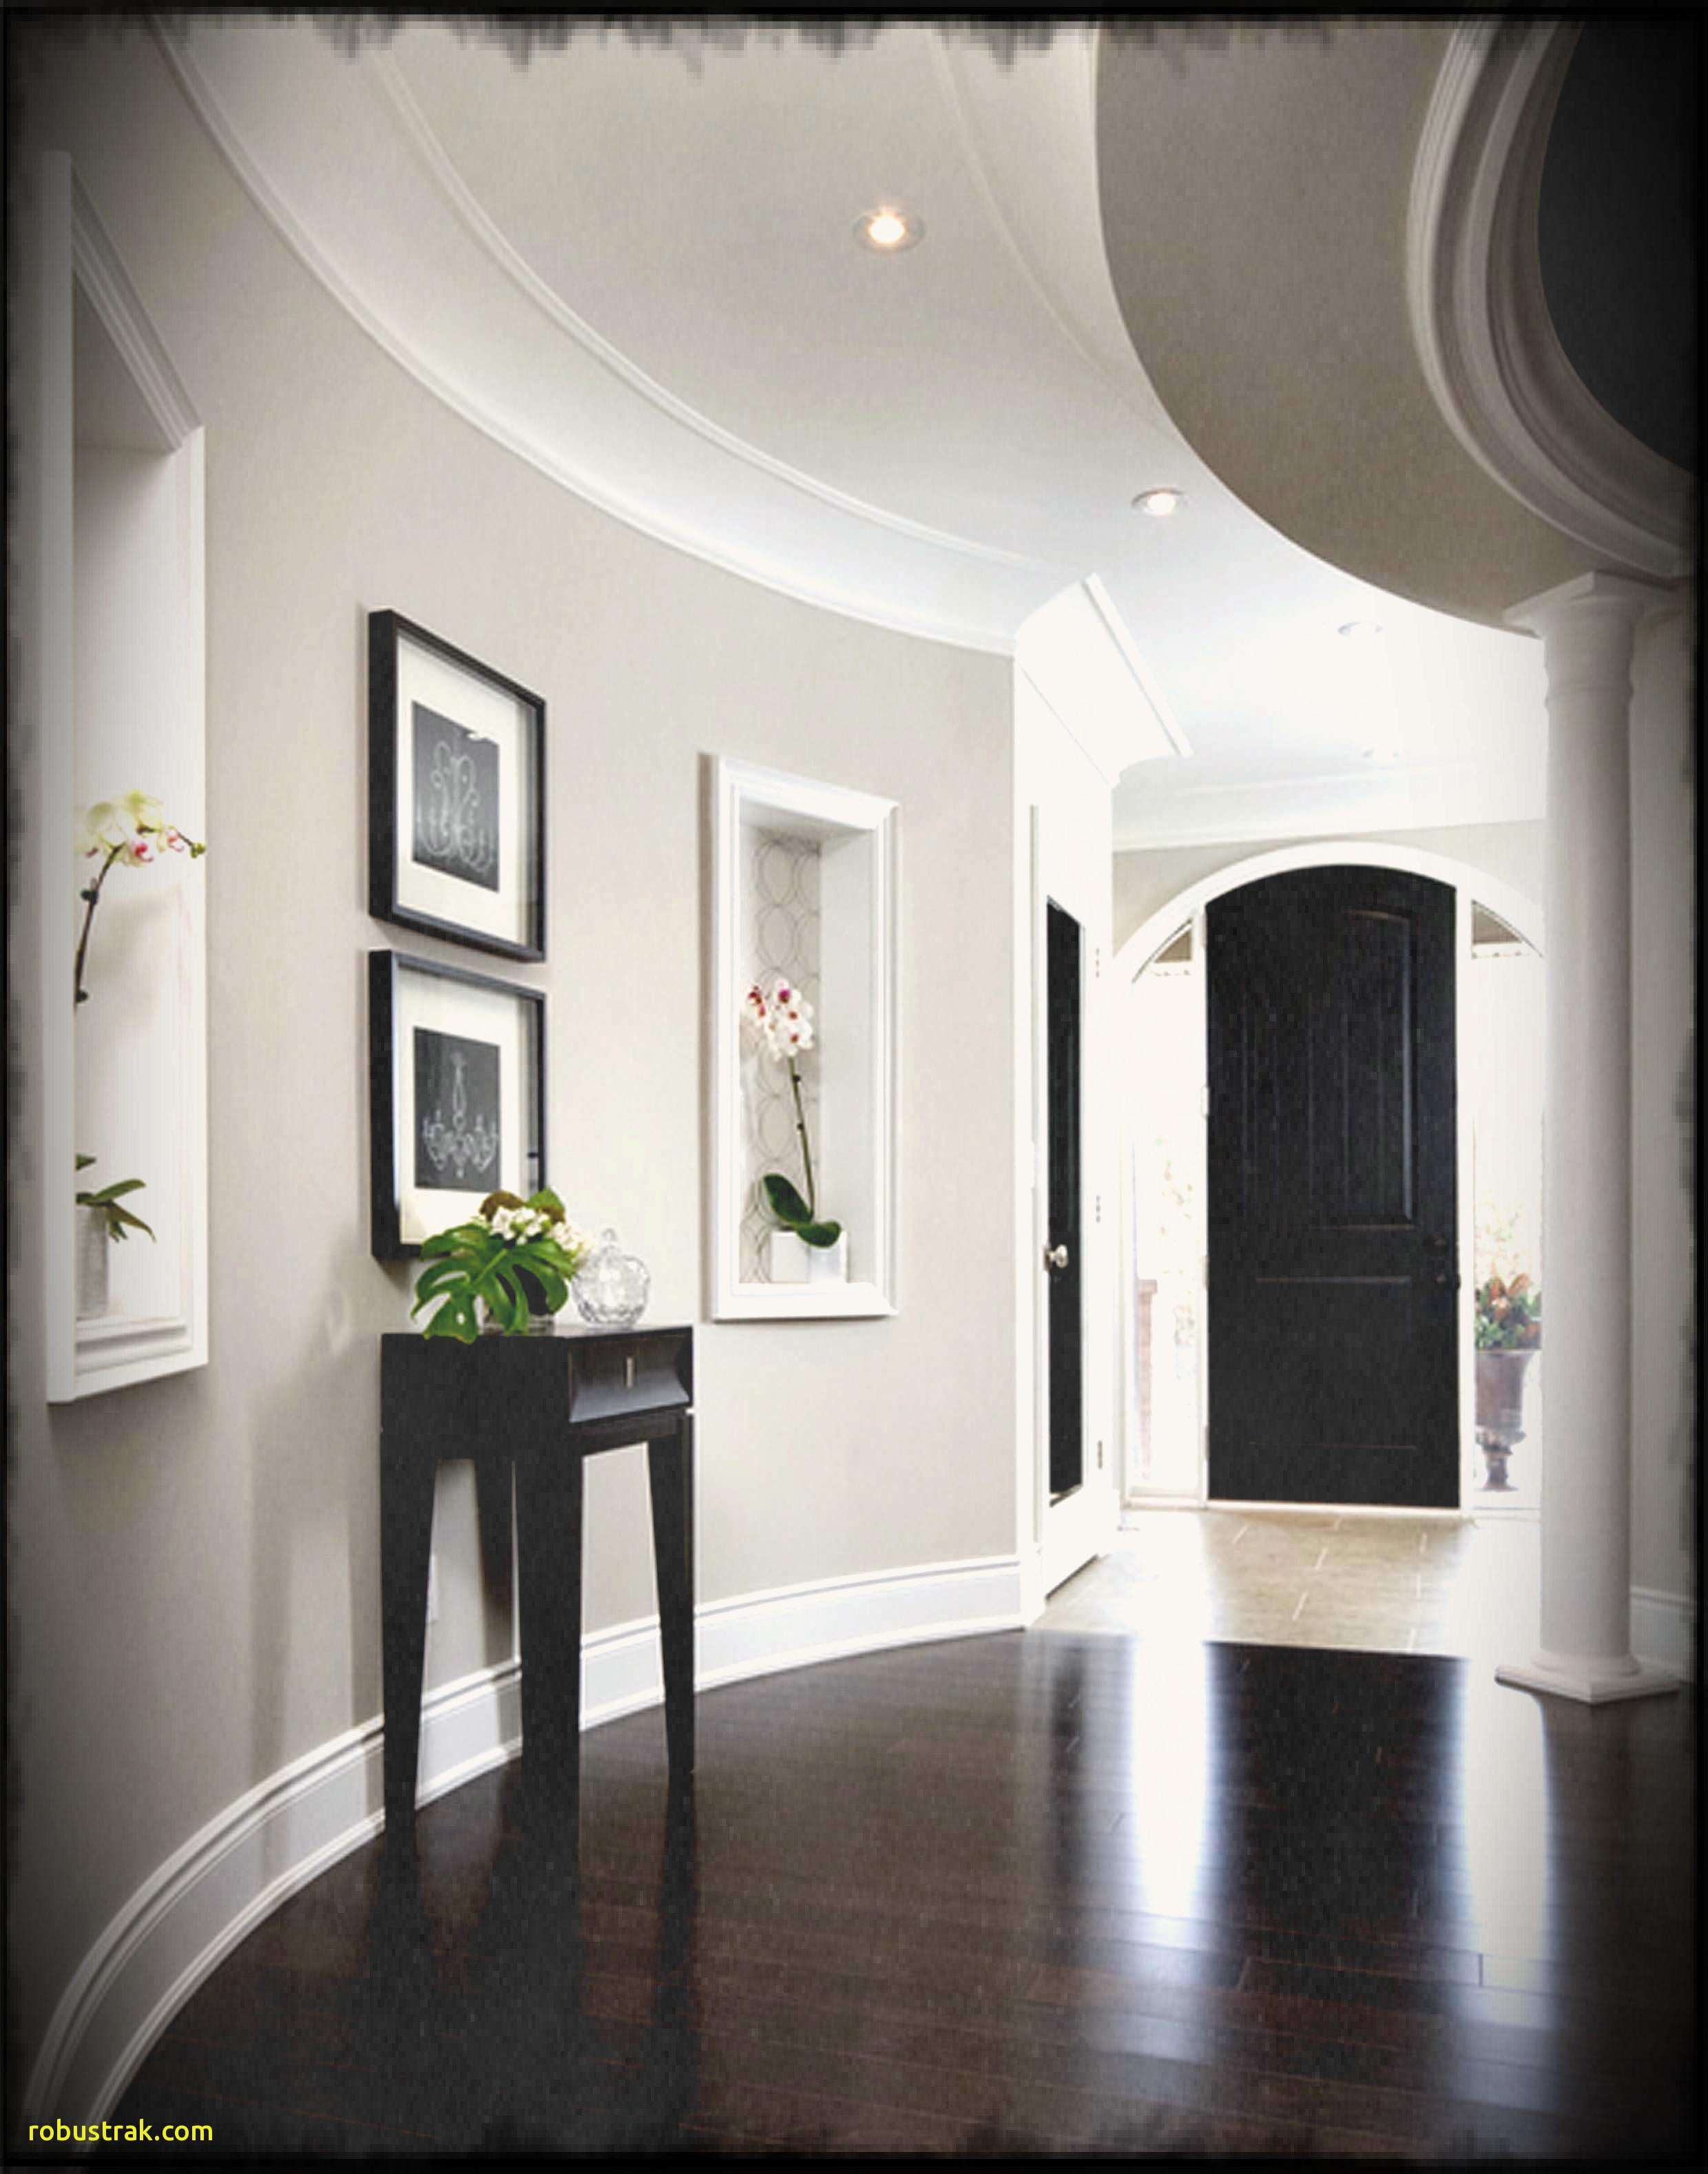 hardwood flooring ideas pinterest of lovely rugs for dark hardwood floors home design ideas in luxury idea dark wood floors with grey walls what color carpet goes download gencongress surripuinet